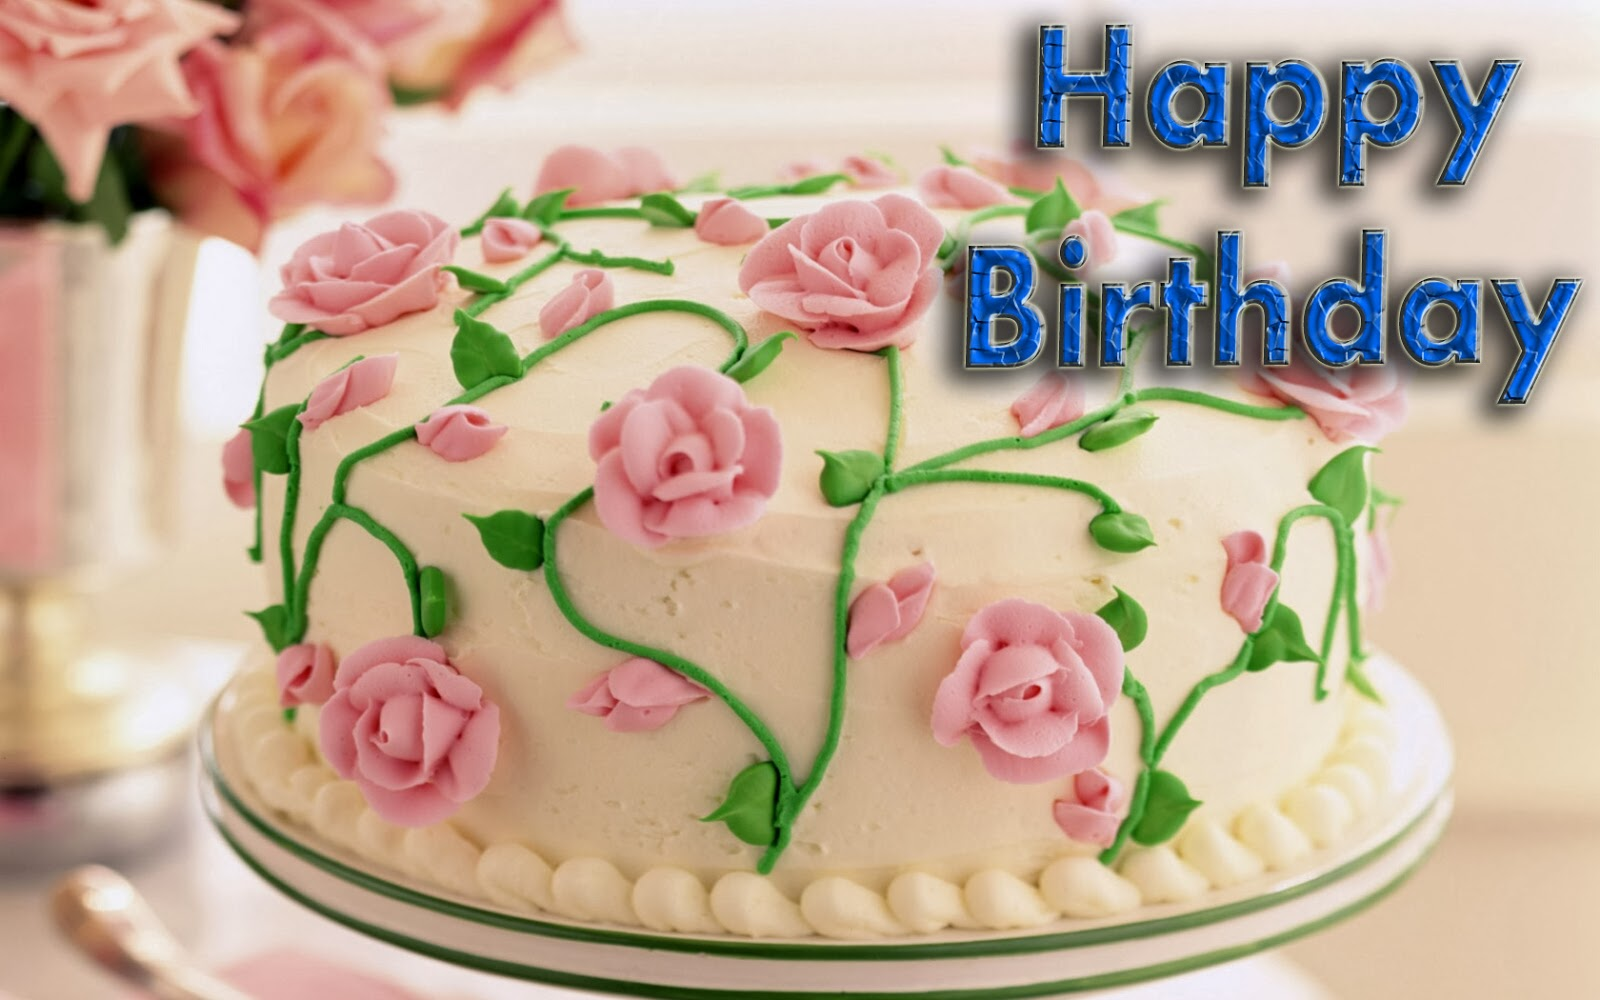 Birthday Images With Flowers And Cake With Names : Lovable Images: Happy Birthday Greetings free download ...